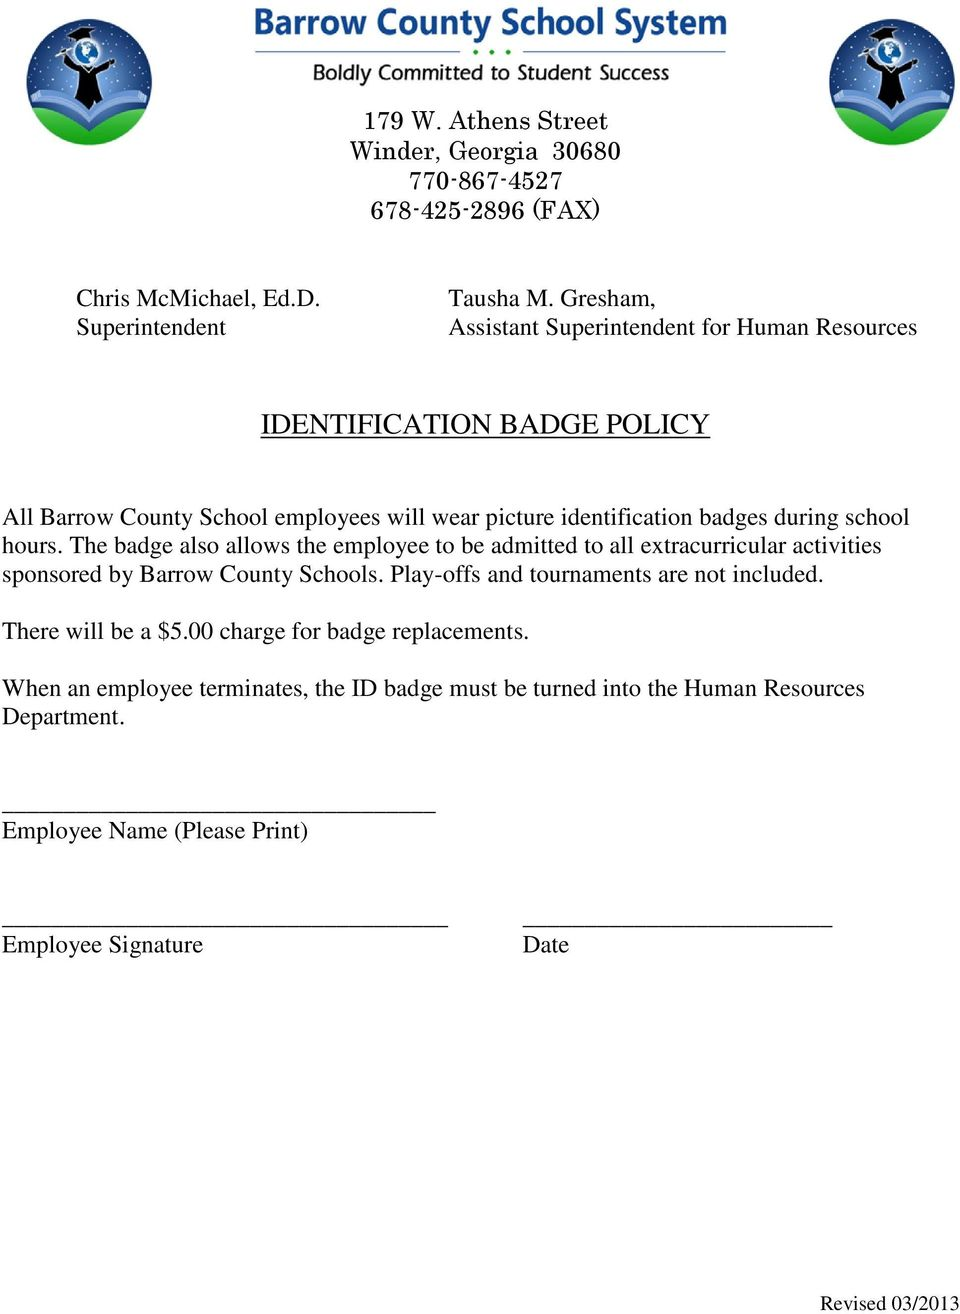 school hours. The badge also allows the employee to be admitted to all extracurricular activities sponsored by Barrow County Schools.